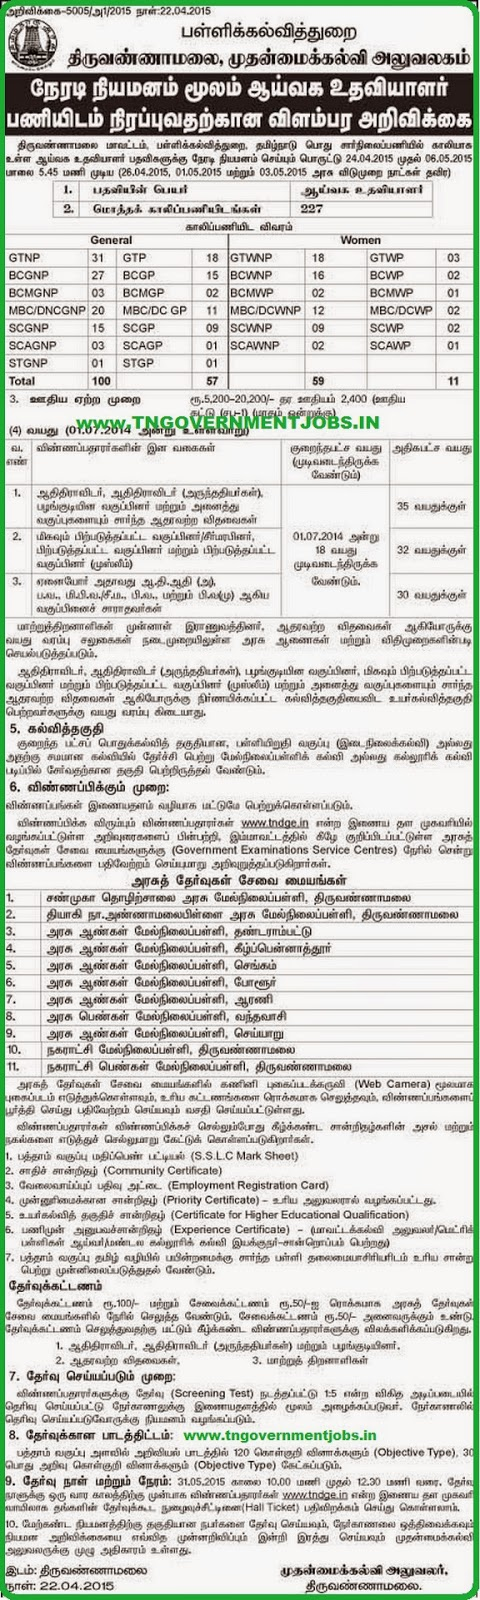 Thiruvannamalai District CEO Lab Asst Recruitments 2015 (www.tngovernmentjobs.in)